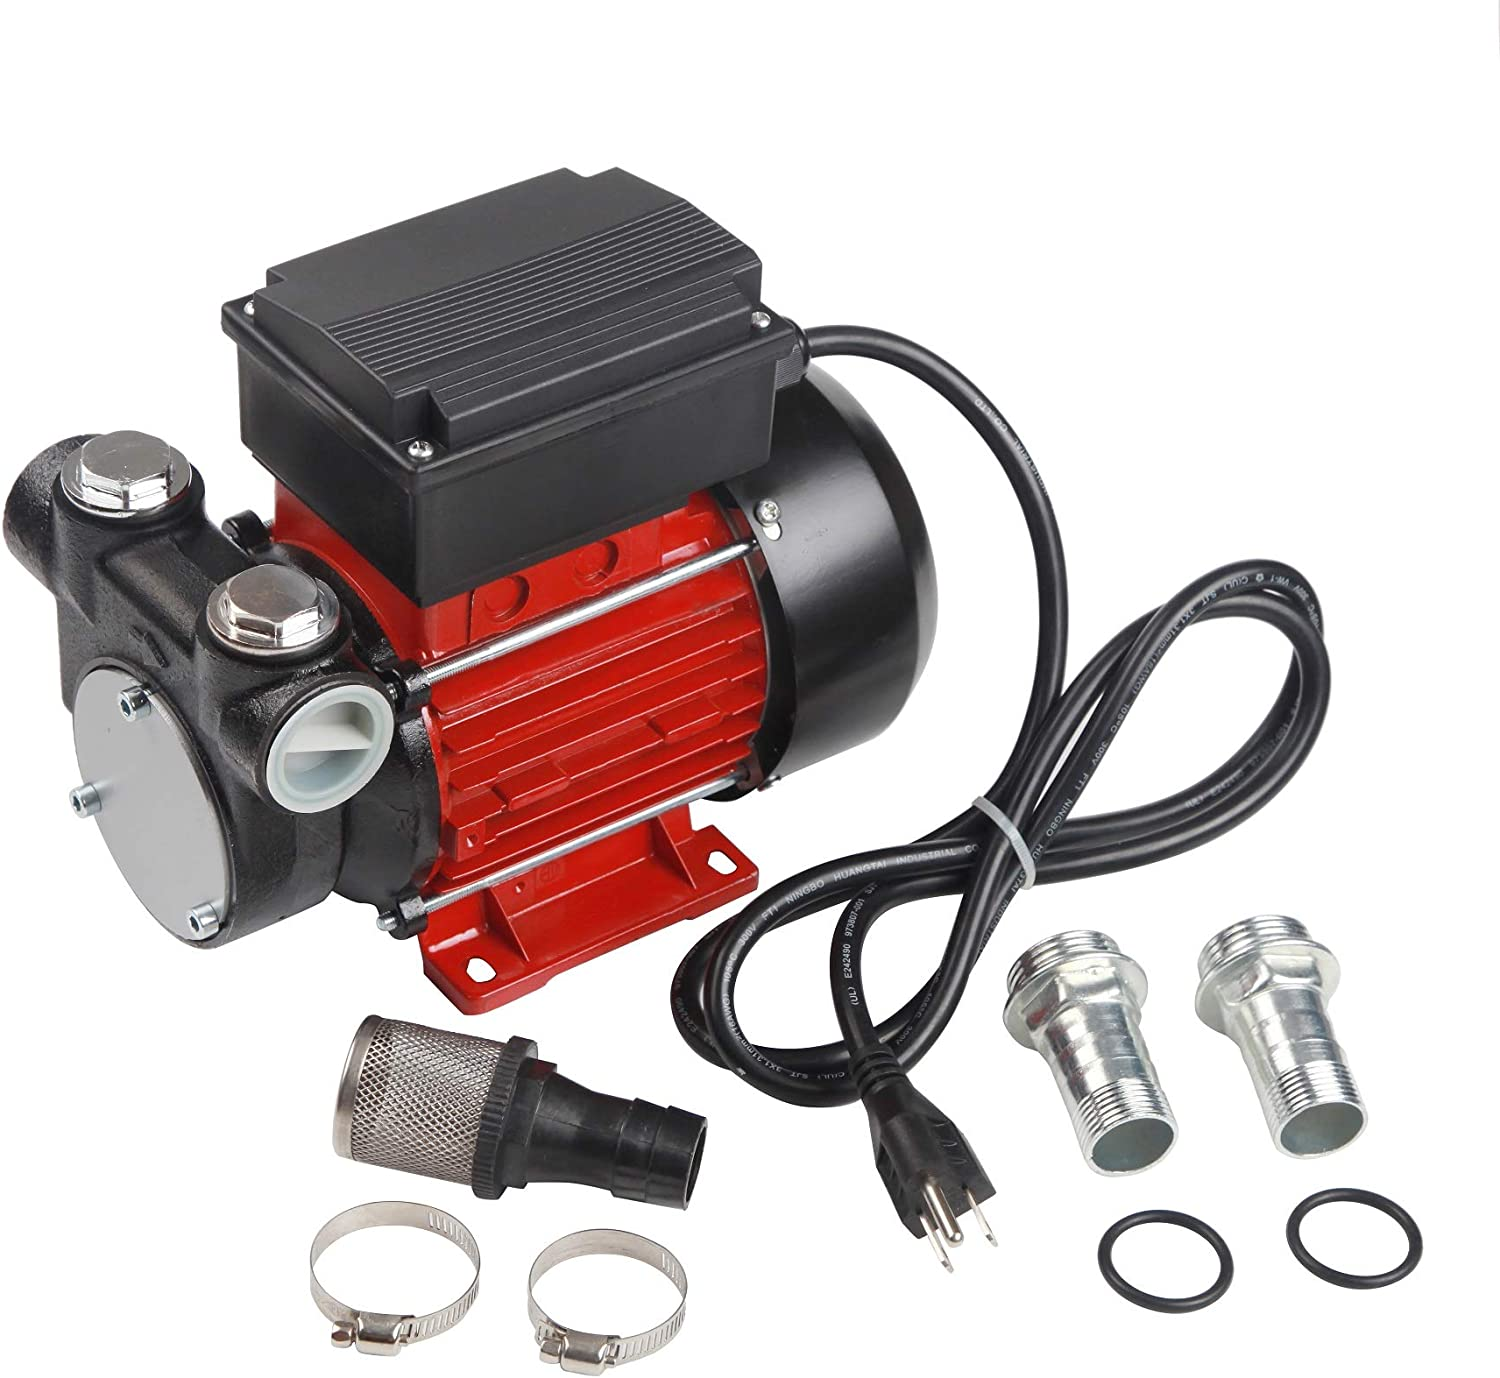 Trupow 110V AC 15GPM Electric Self-priming Diesel Kerosene Oil Fuel Transfer Extractor Pump